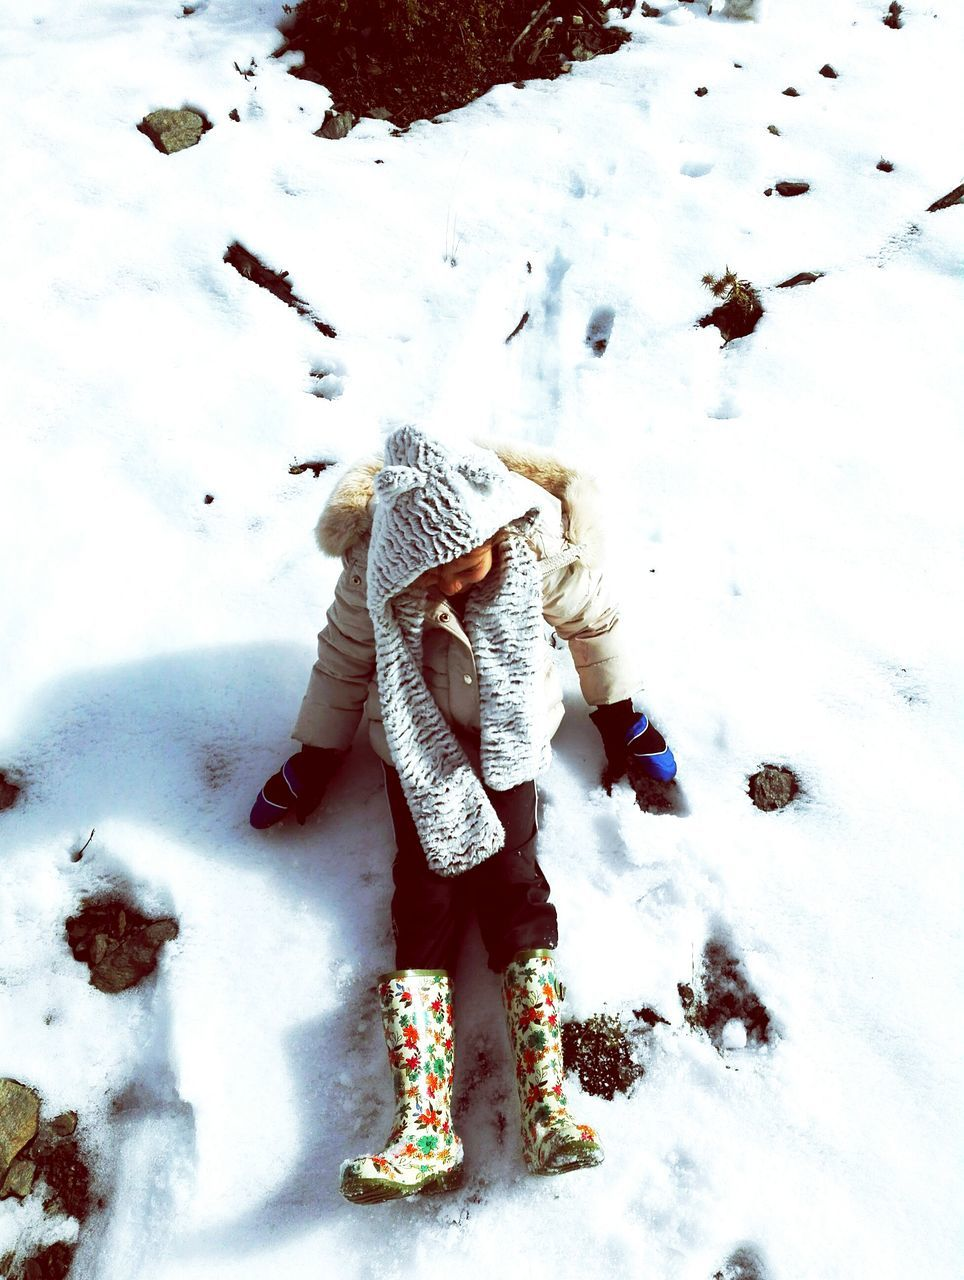 full length, snow, real people, standing, cold temperature, winter, one person, childhood, rear view, warm clothing, day, outdoors, nature, low section, people